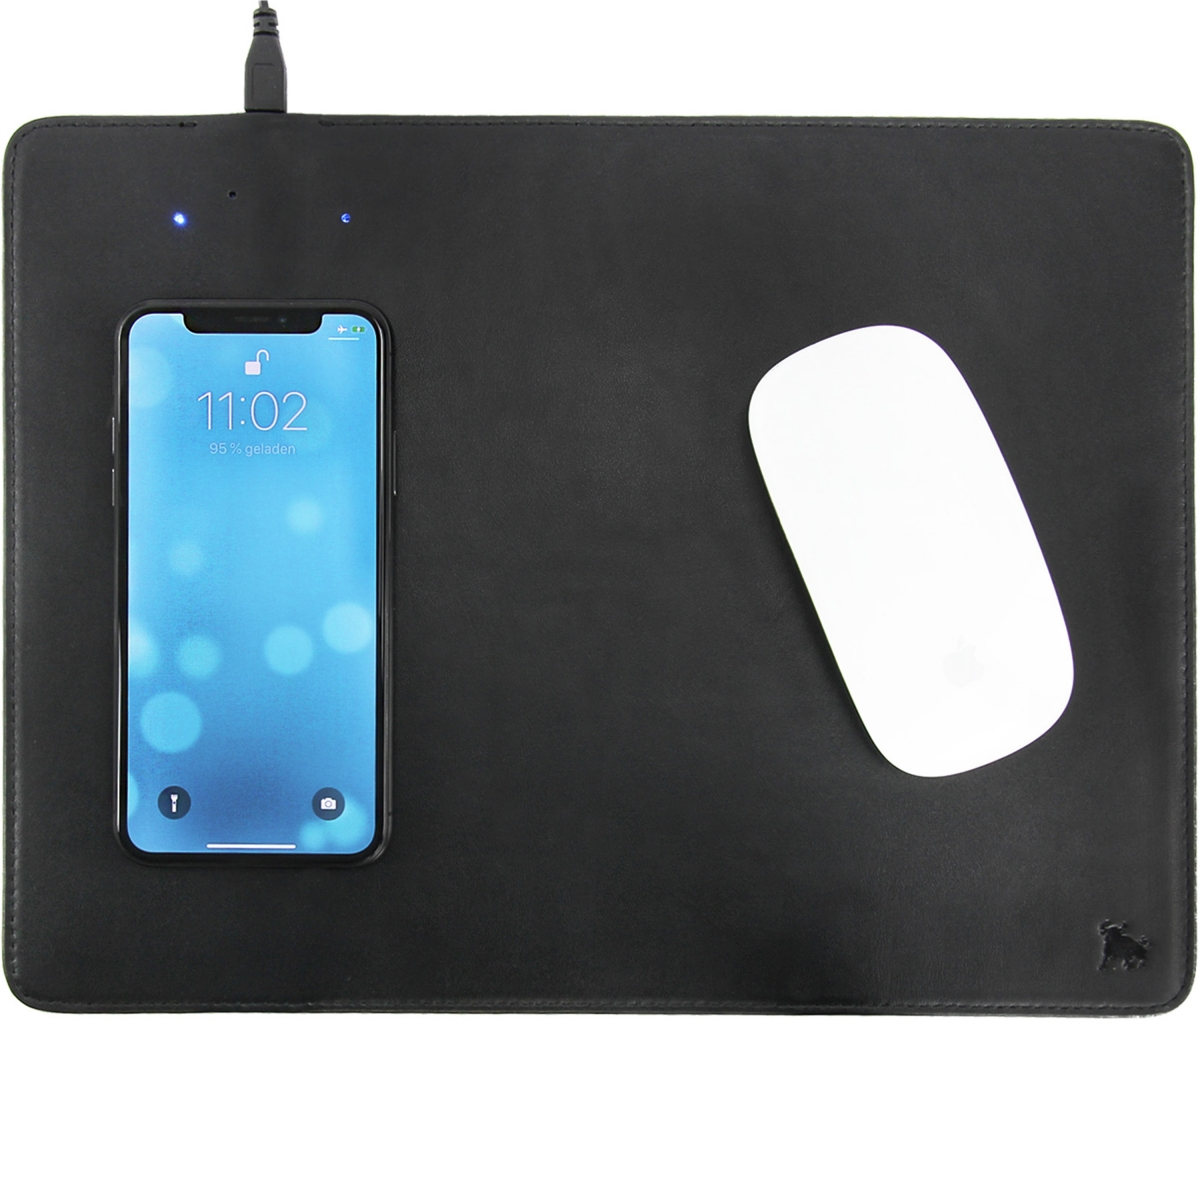 Mouse pad with wireless charging station